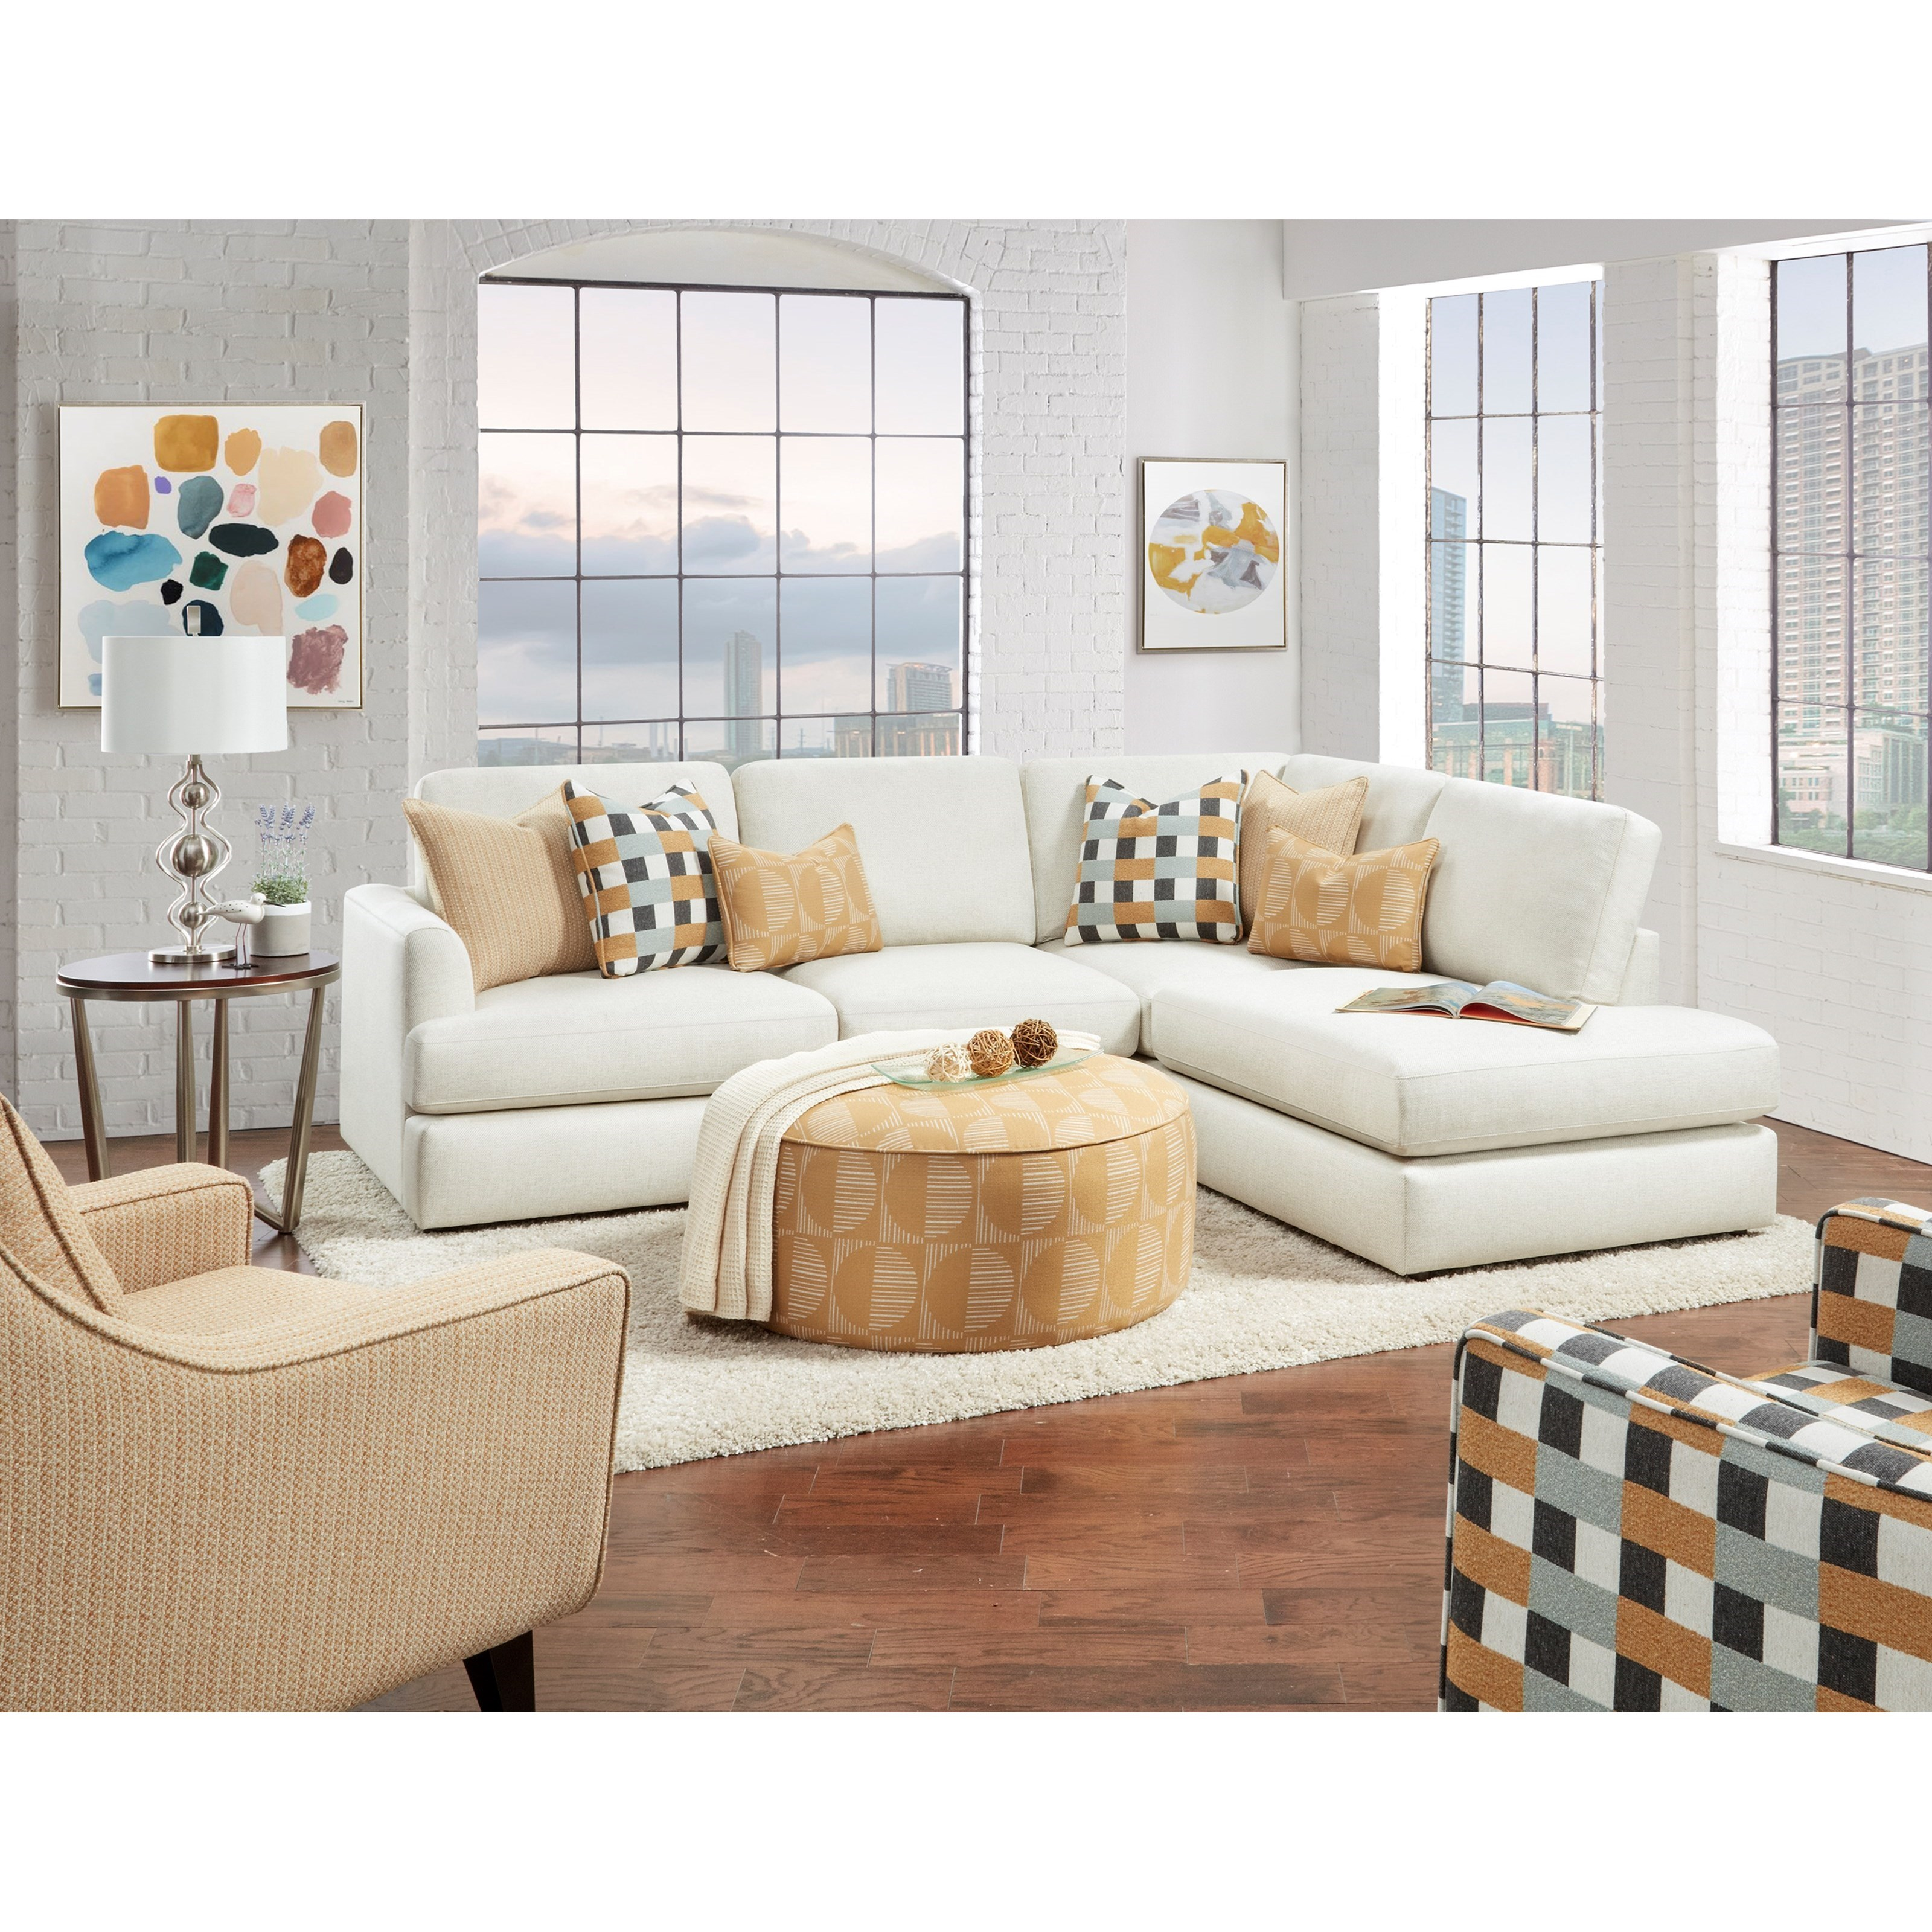 23-00 Living Room Group by FN at Lindy's Furniture Company